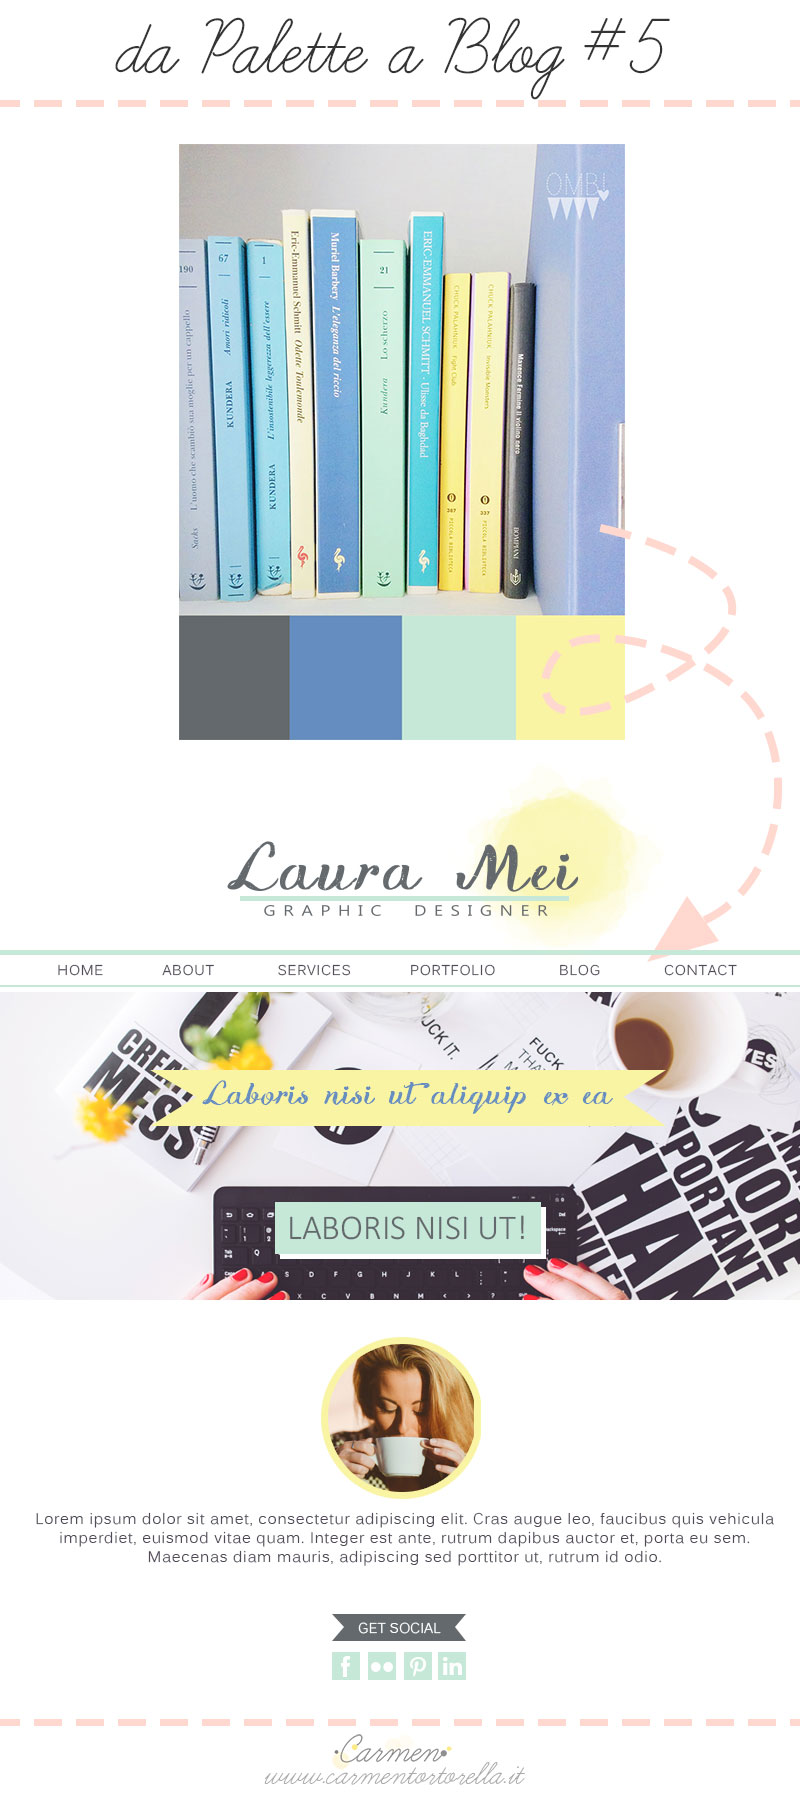 Da Palette a Blog design #5